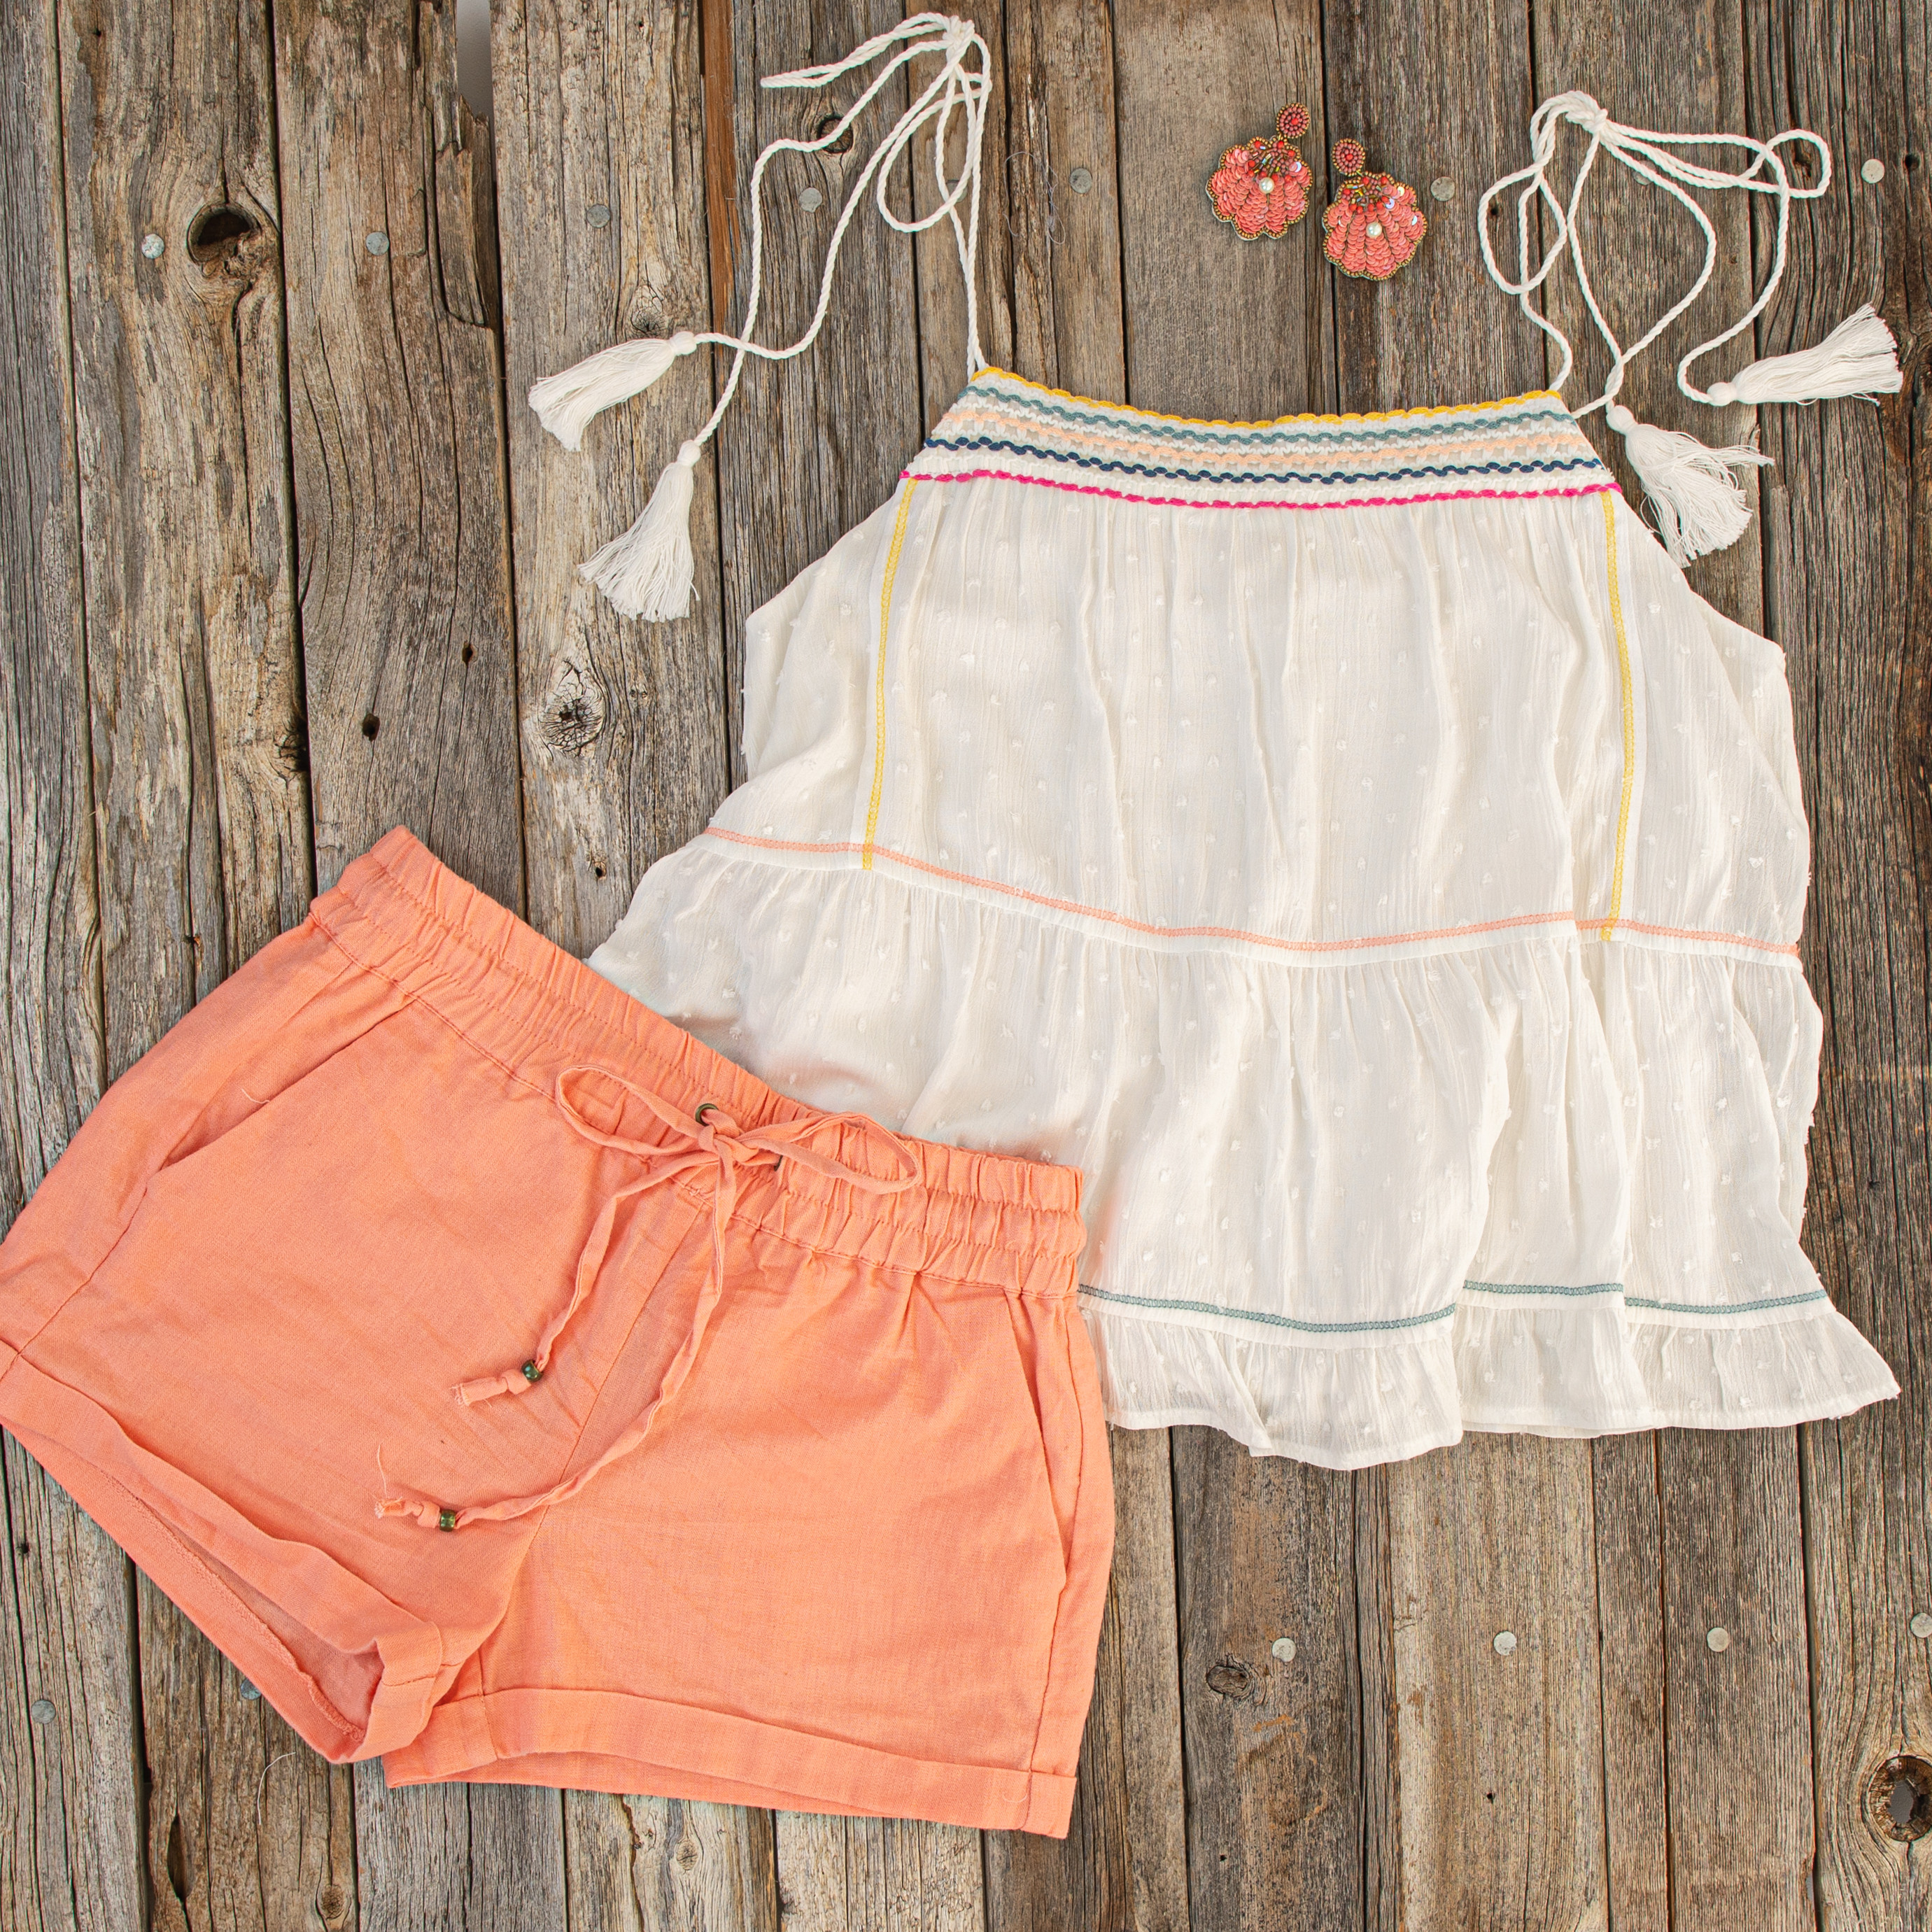 Coral Mid Rise Smocked Shorts with Pockets and Drawstring